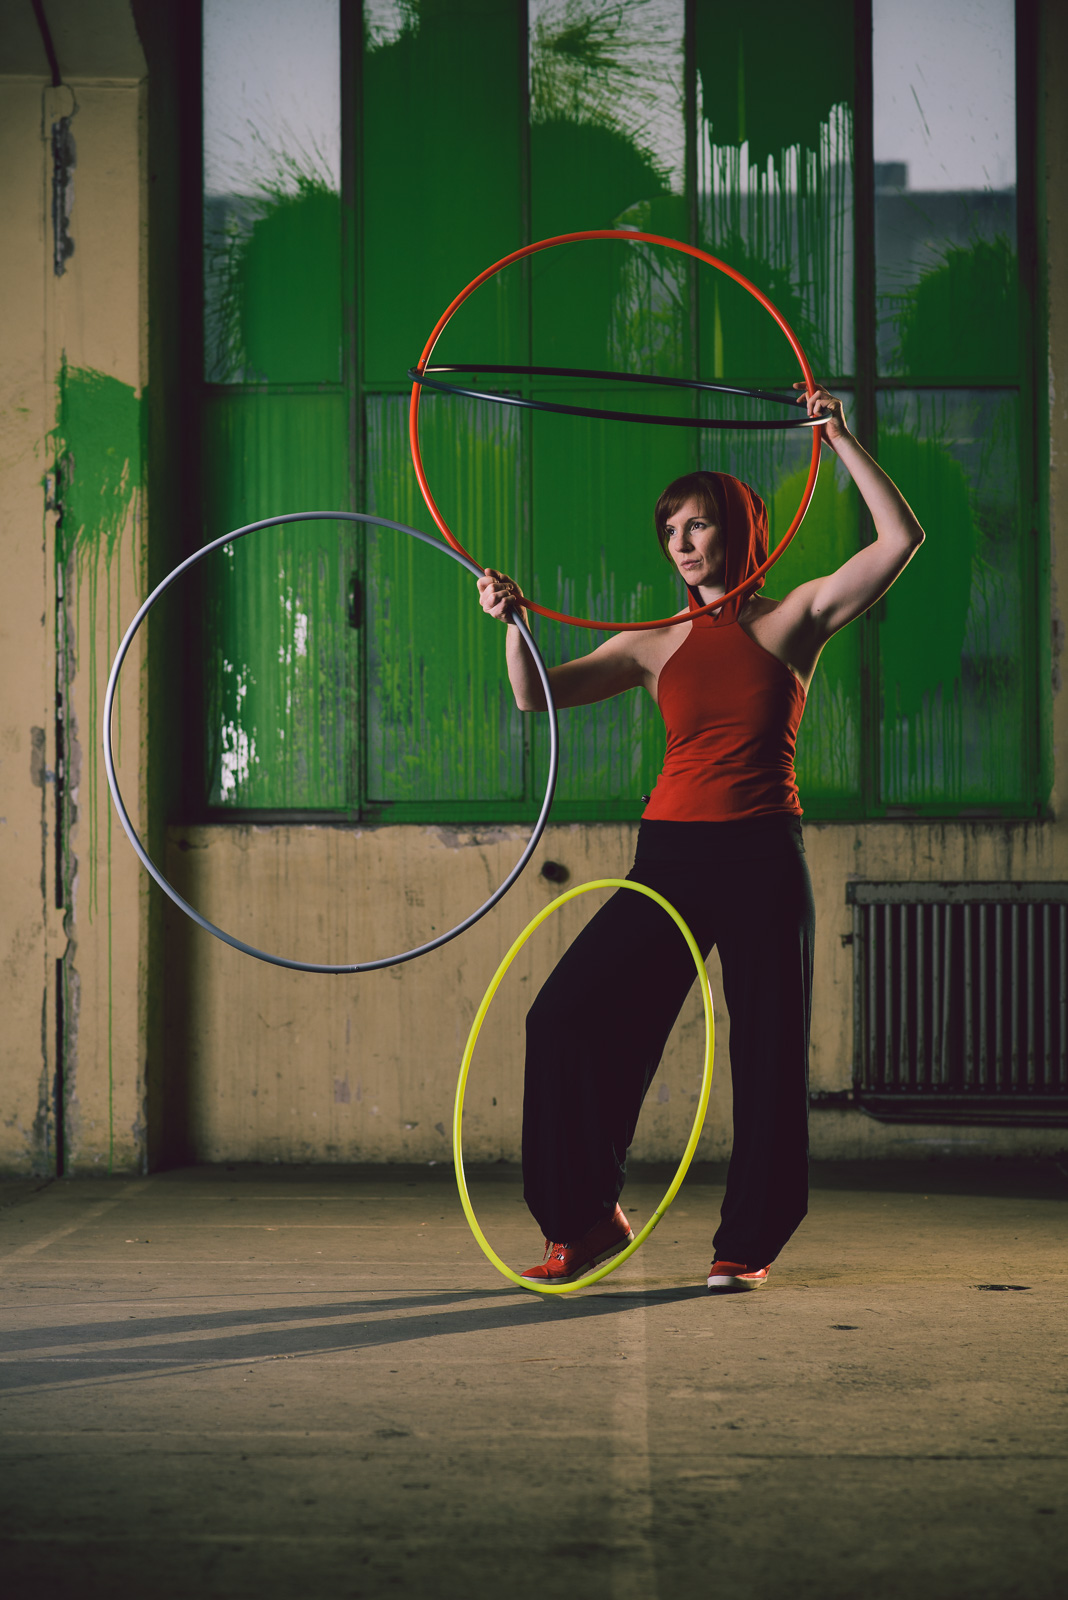 hula-hoop-shootingLY8_0929